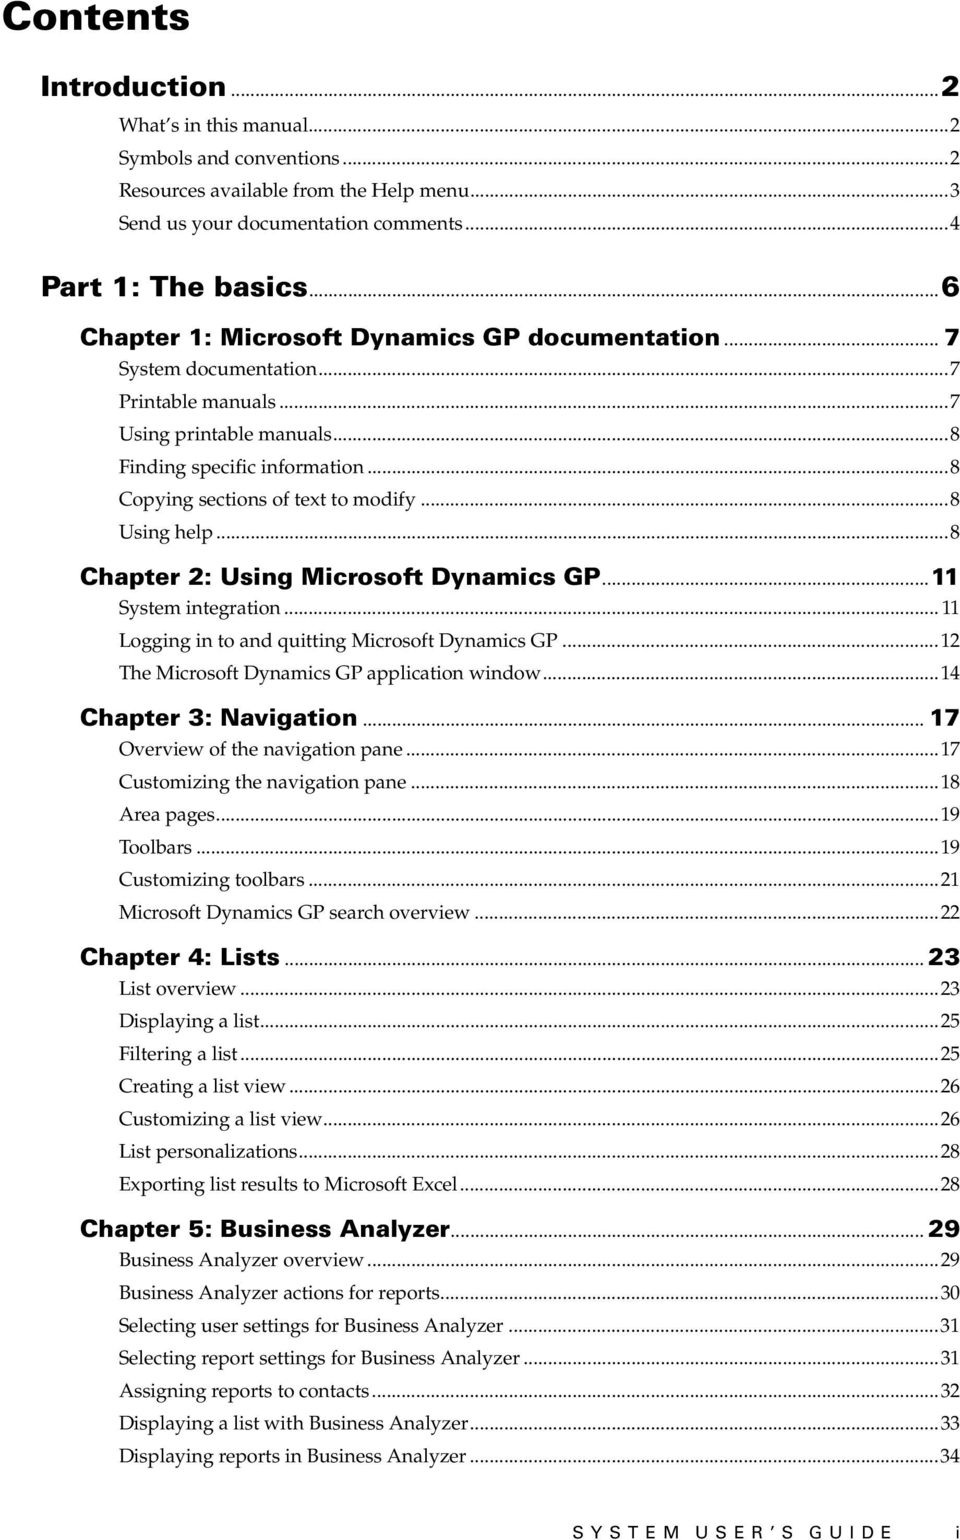 ..8 Using help...8 Chapter 2: Using Microsoft Dynamics GP...11 System integration... 11 Logging in to and quitting Microsoft Dynamics GP...12 The Microsoft Dynamics GP application window.